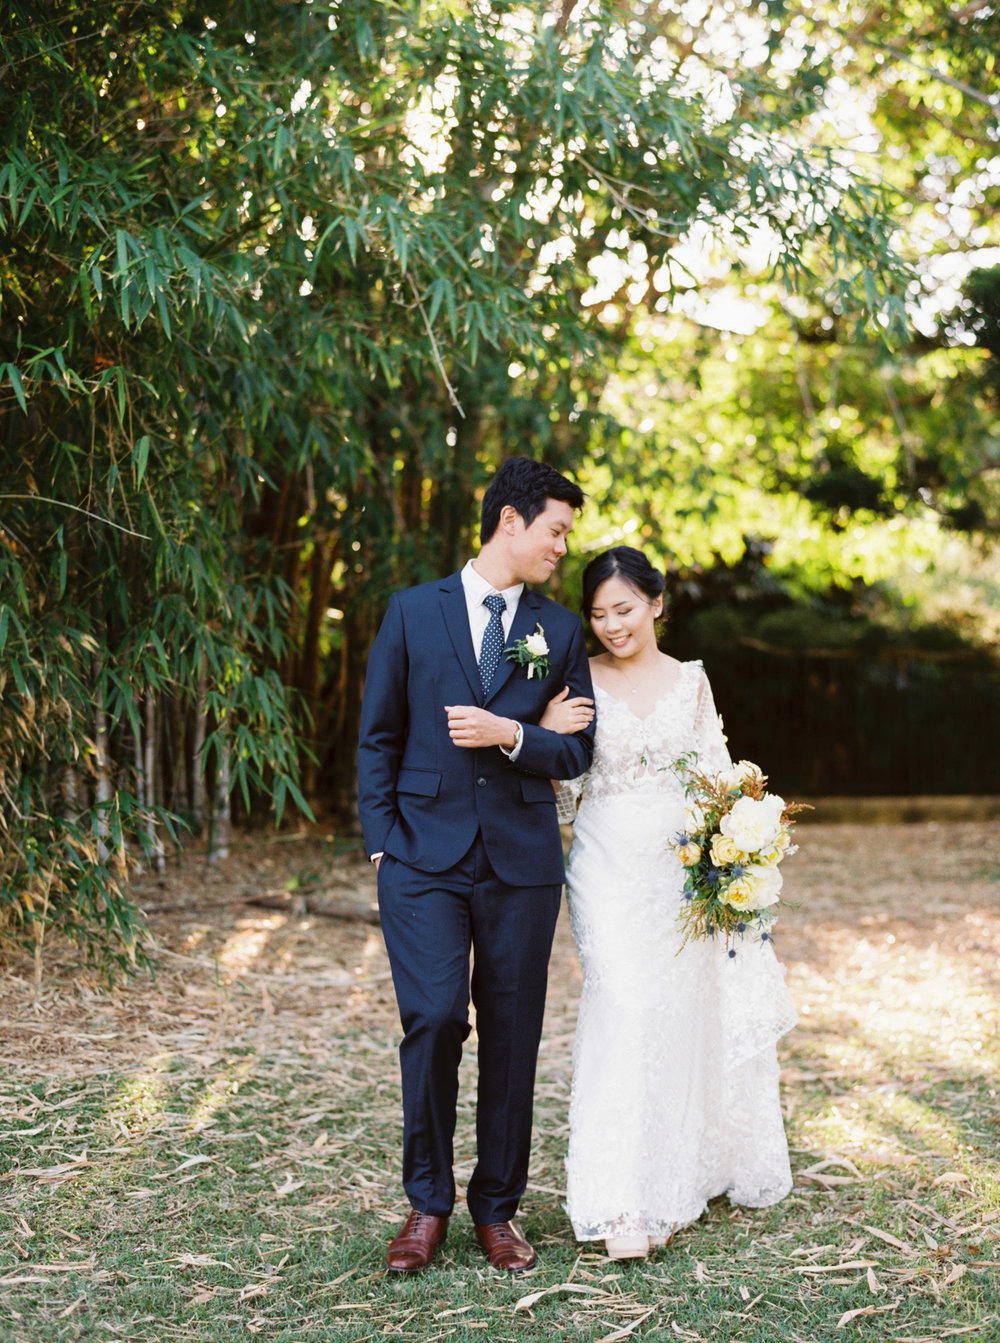 00026- Fine Art Film Australia Destination Sydney Wedding Photographer Sheri McMahon.jpg